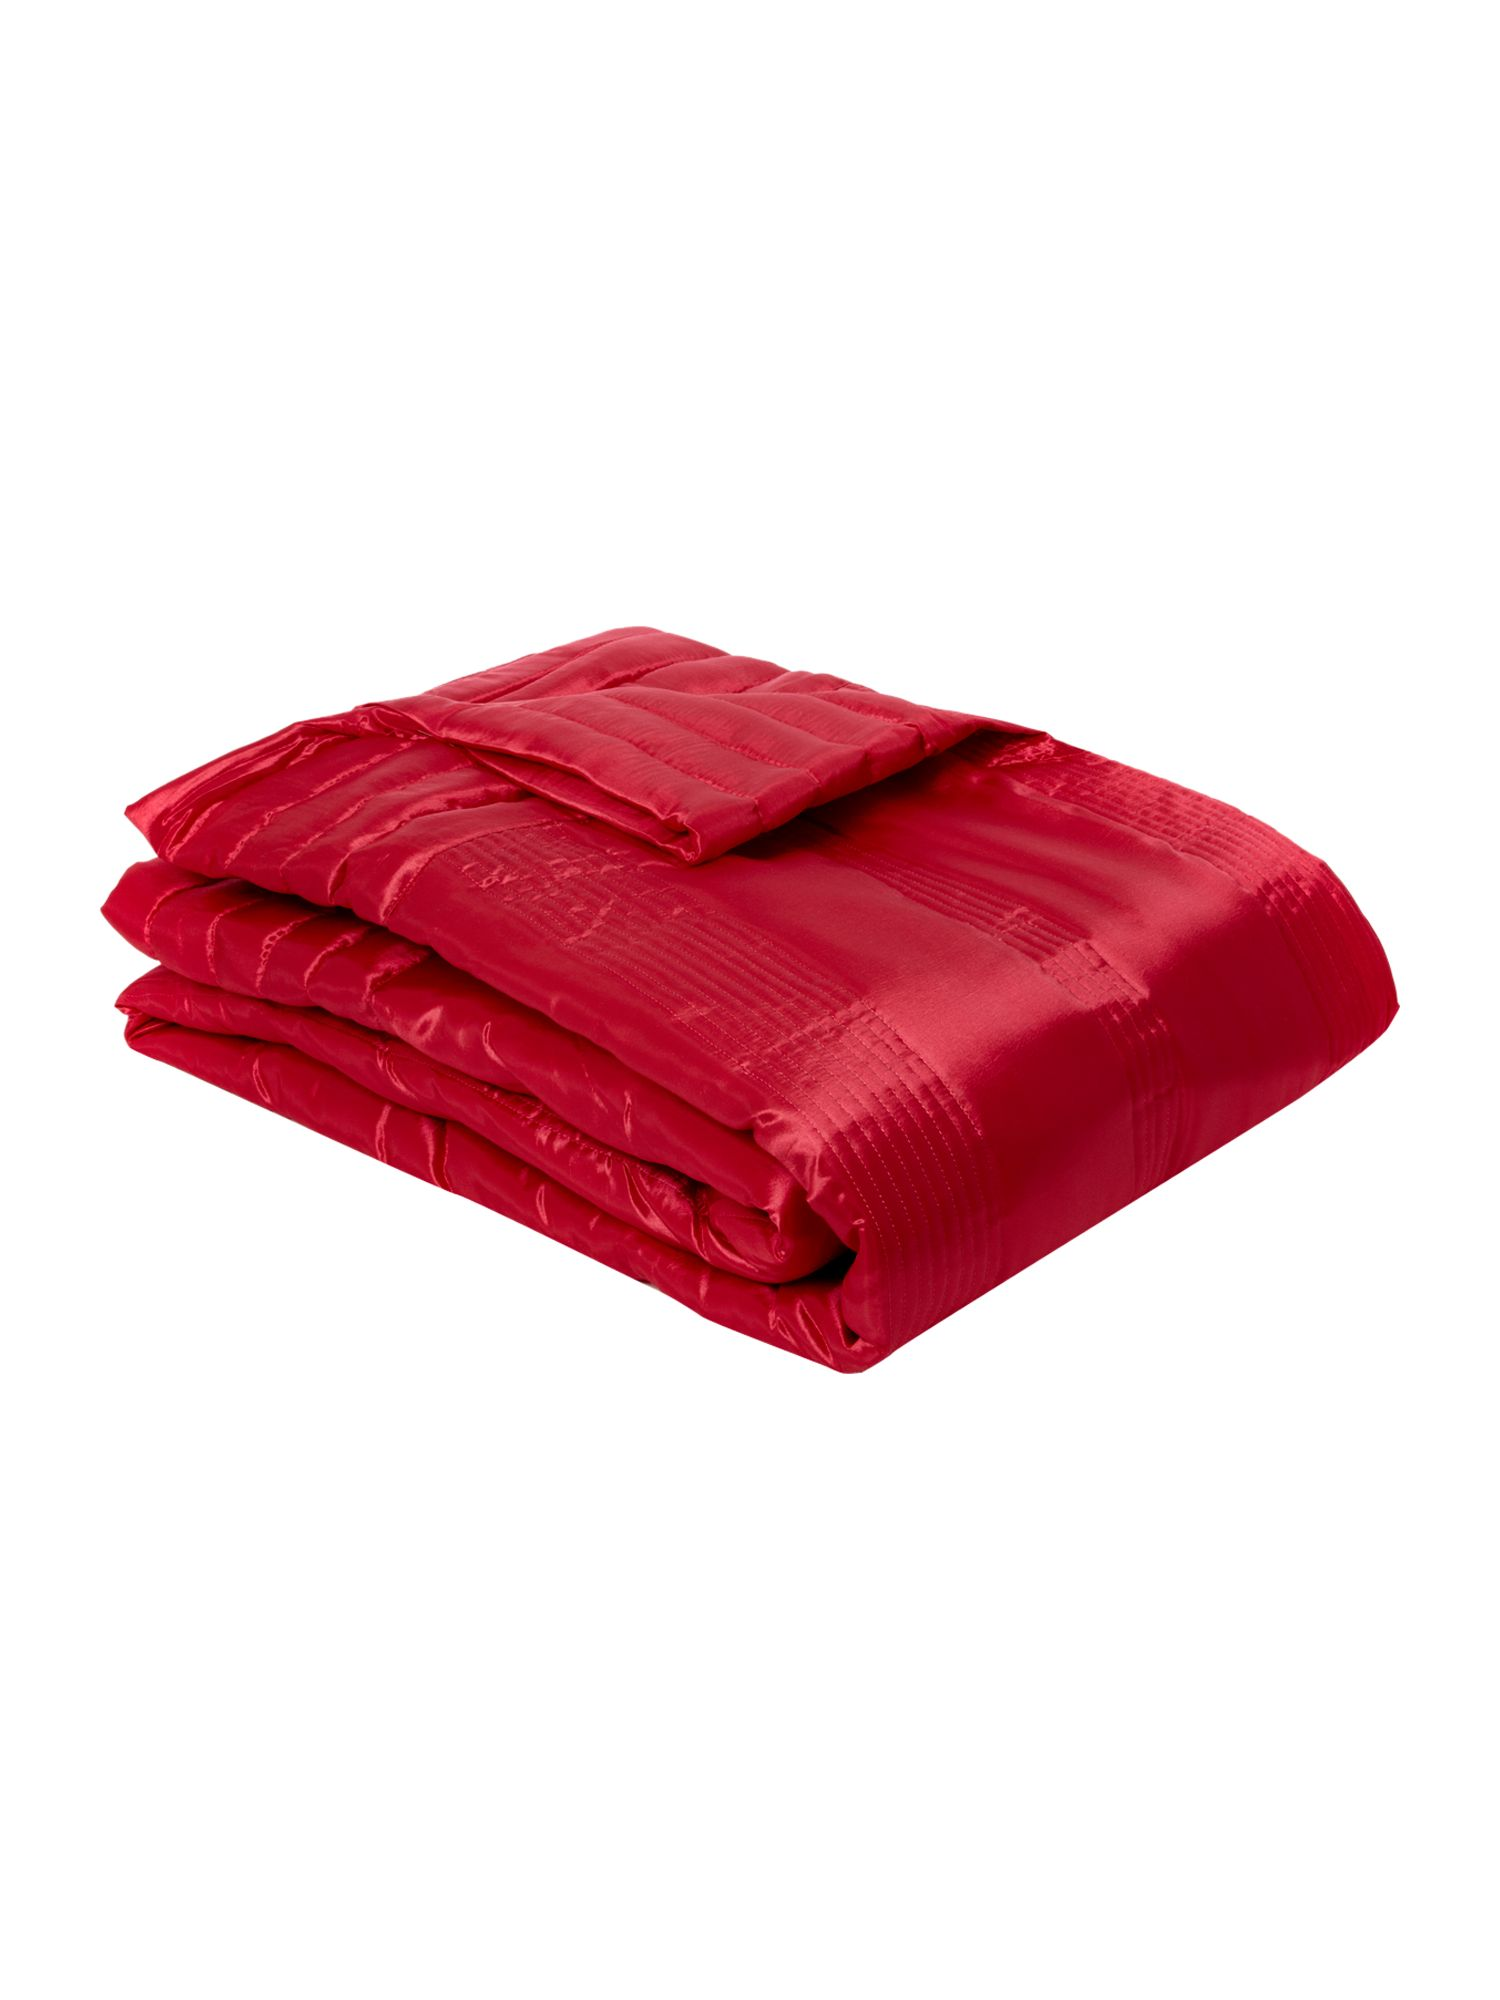 Changeant throw in pink